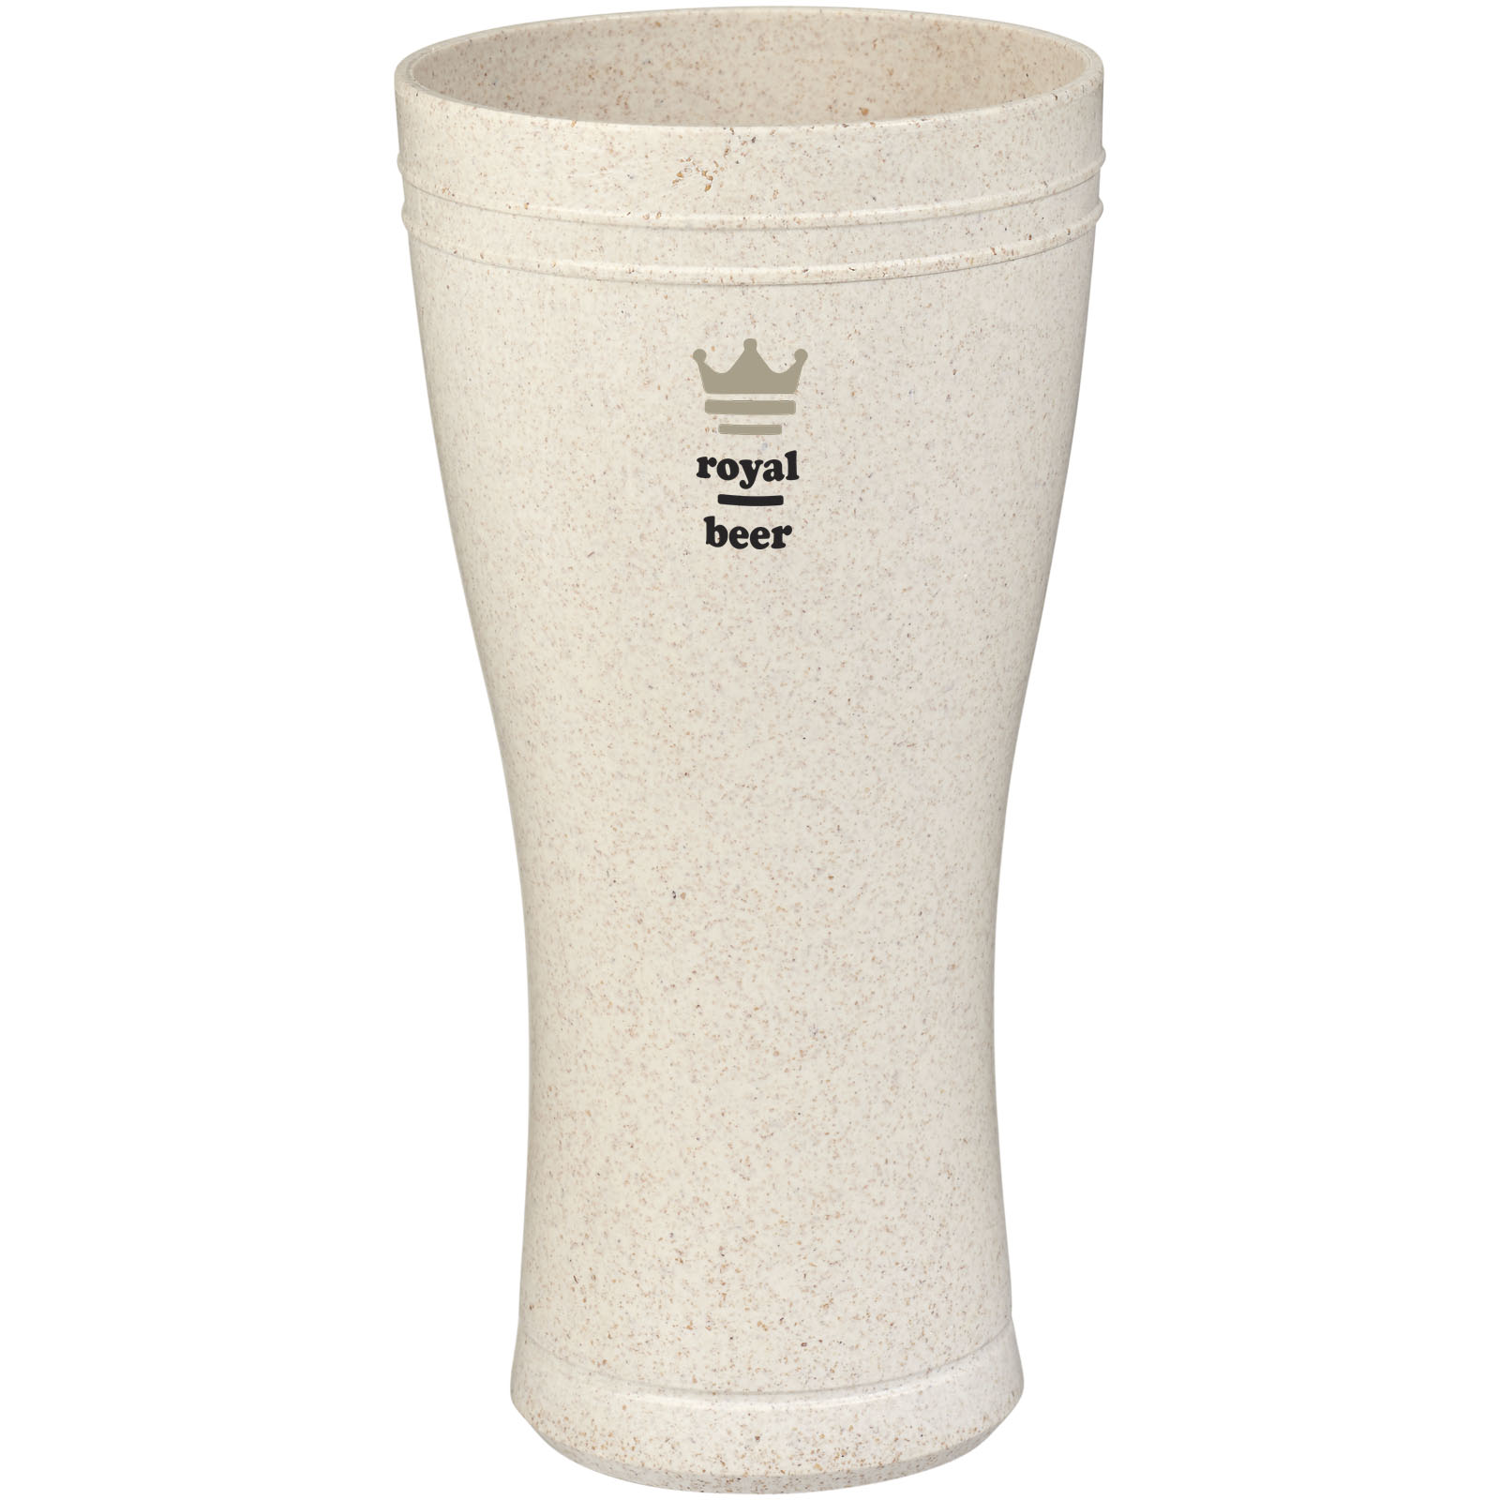 Tagus 400 Ml Wheat Straw Beer Glass